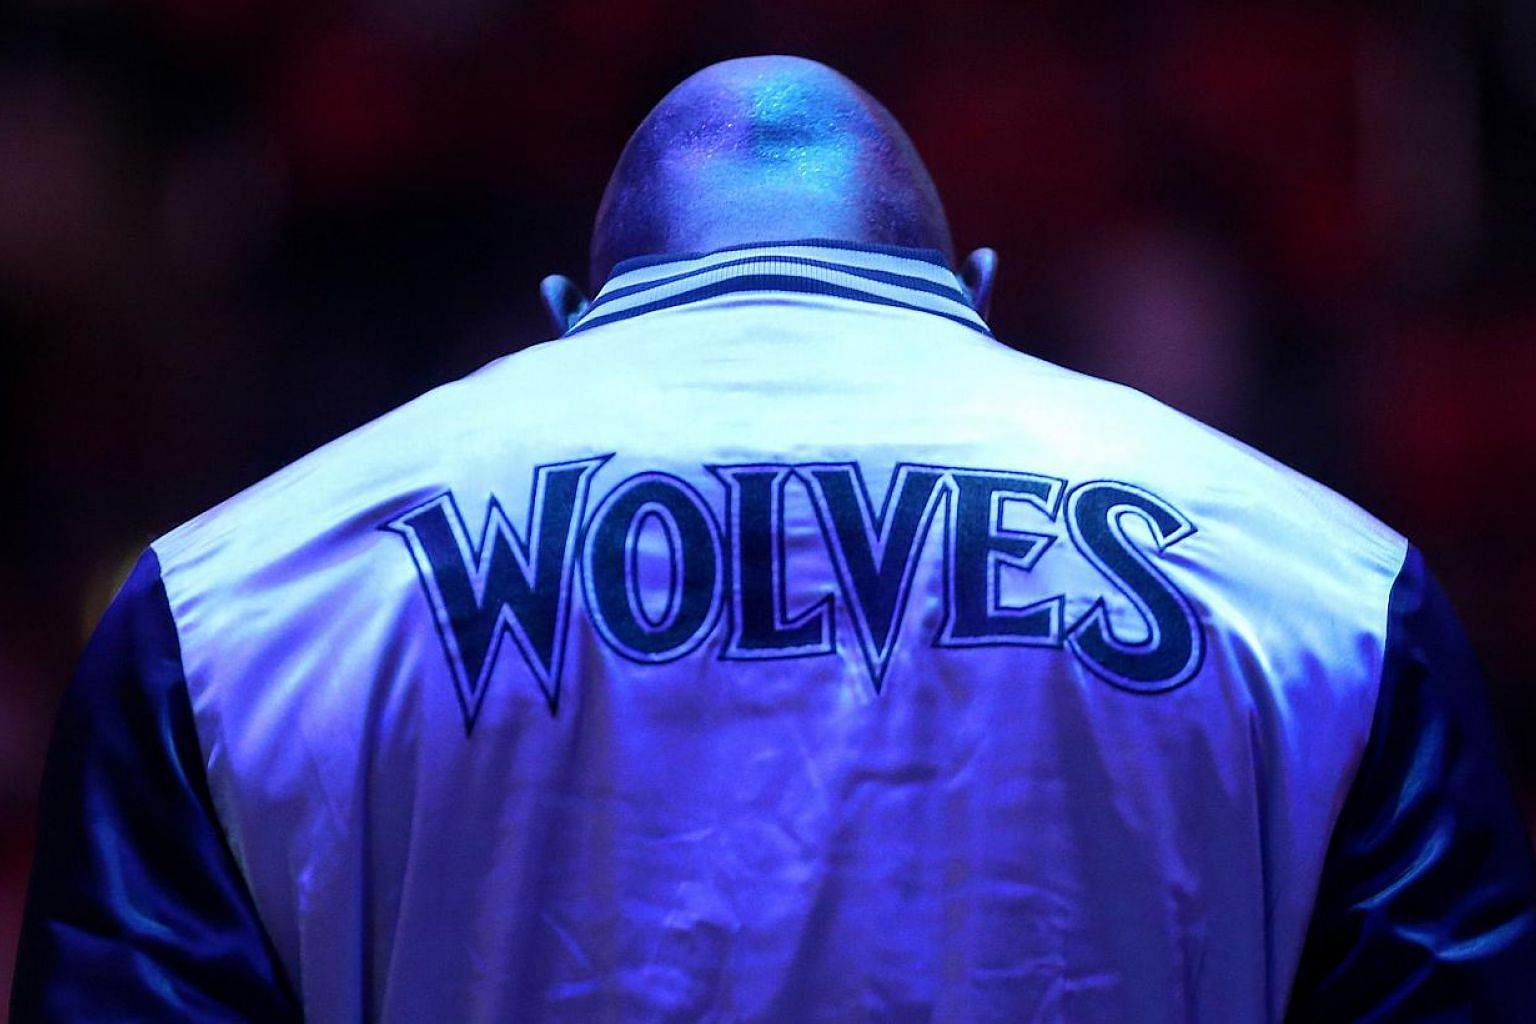 Kevin Garnett #21 of the Minnesota Timberwolves stands during the singing of the national anthem before the game with the Los Angeles Clippers at Staples Center on March 9, 2015 in Los Angeles, California. The Timberwolves won the right to pick first